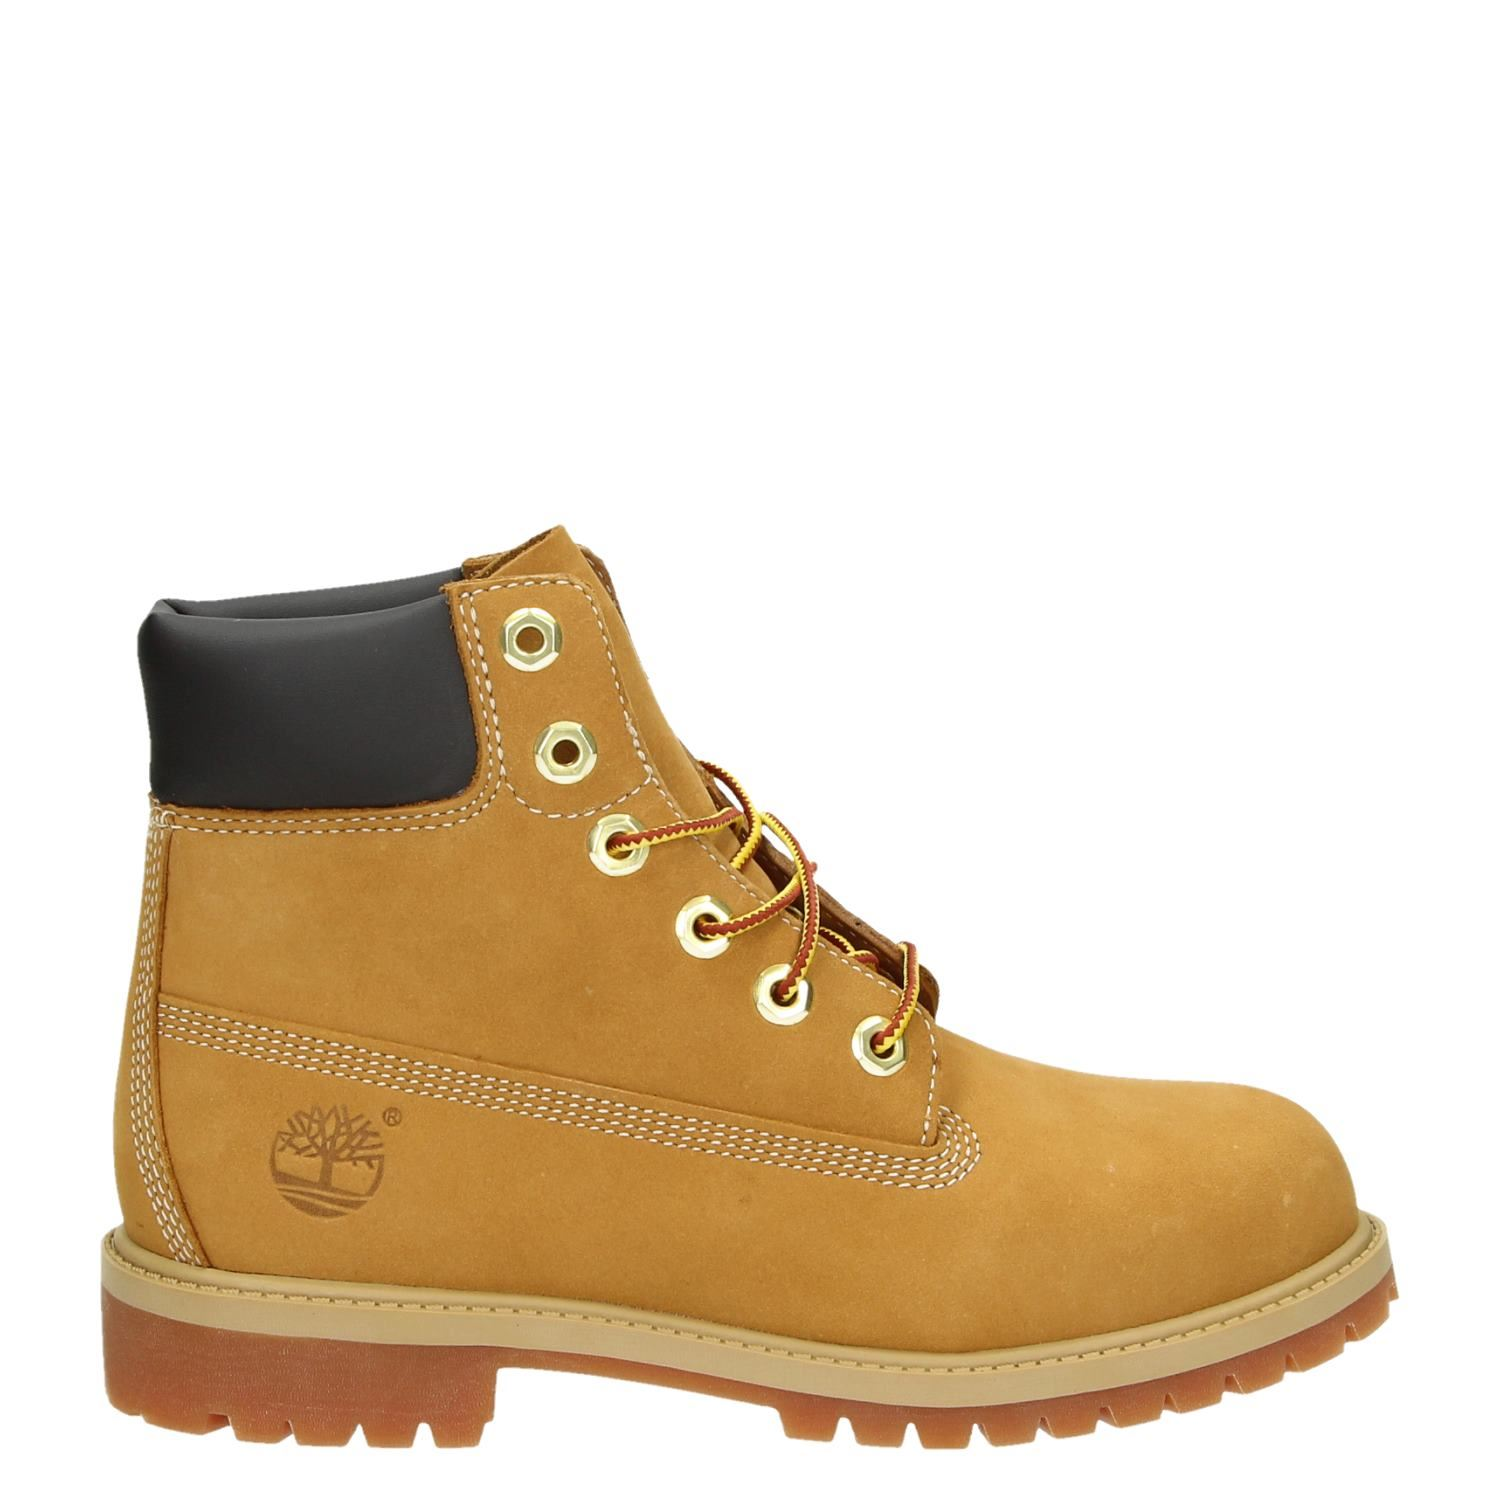 Chaussures Timberland Jaune Taille 41 Hommes n0rLY00